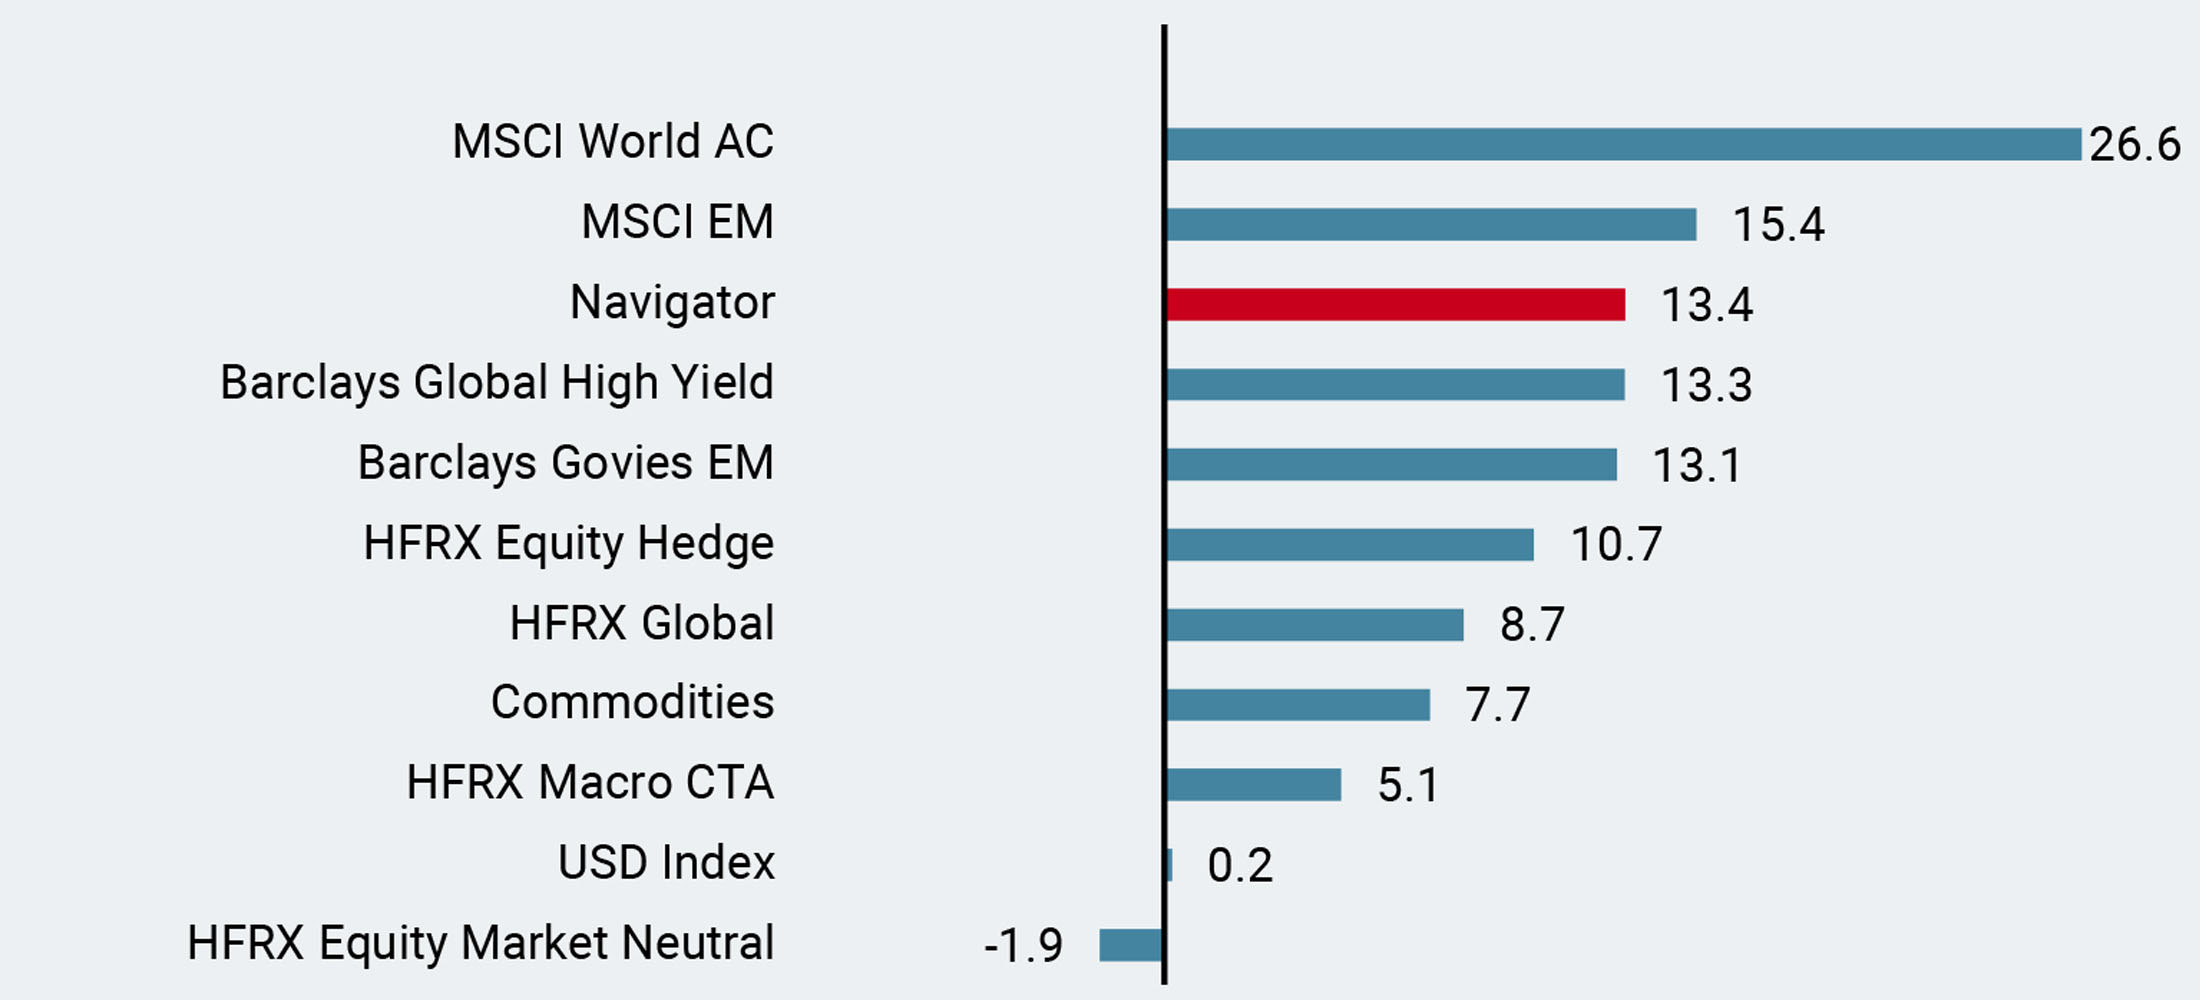 Figure 1: 2019 Performance vs. Key Assets and Hedge Funds Indices